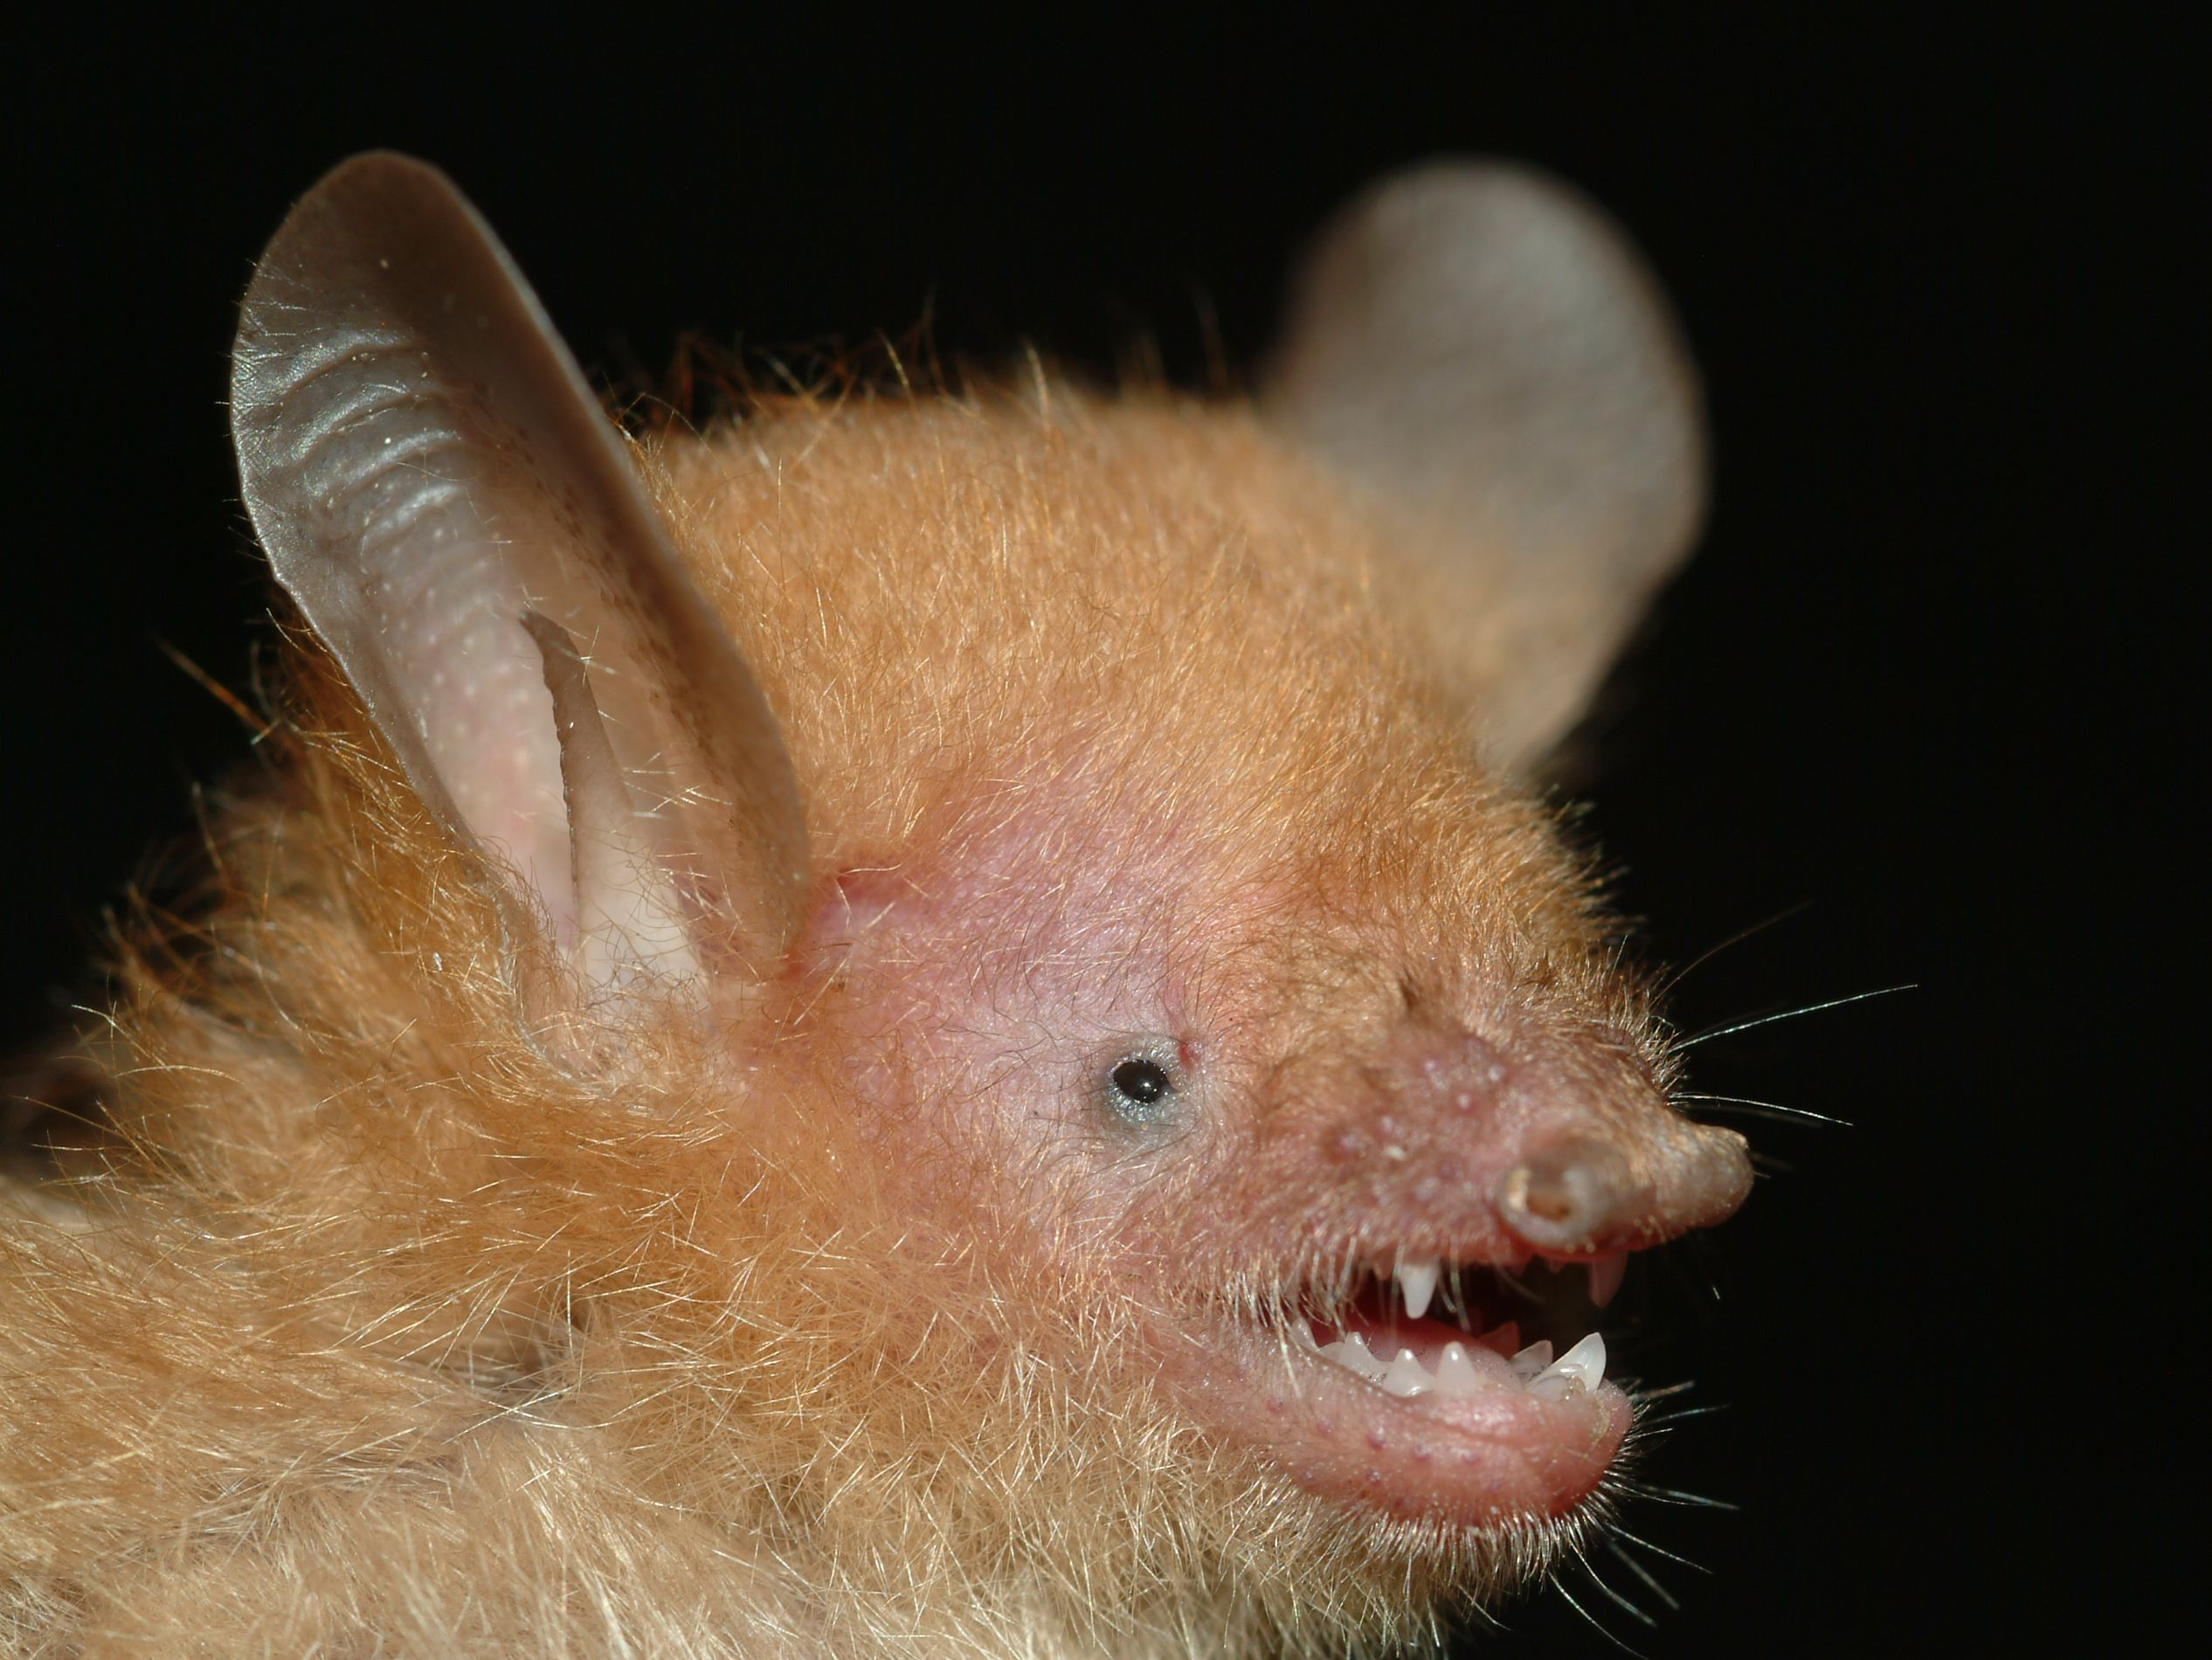 Walston's Tube-Nosed Bat - Murina walstoni - Found in the Greater Mekong region of Southeast Asia, specifically the Dắk Lắk Province of Vietnam and the Koh Kong and Ratanakiri provinces of Cambodia. The Ashy-gray tube-nosed bat and Beelzebub's tube-nosed bat were discovered in 2011, along with this bat - Image : © Gabor Csorba